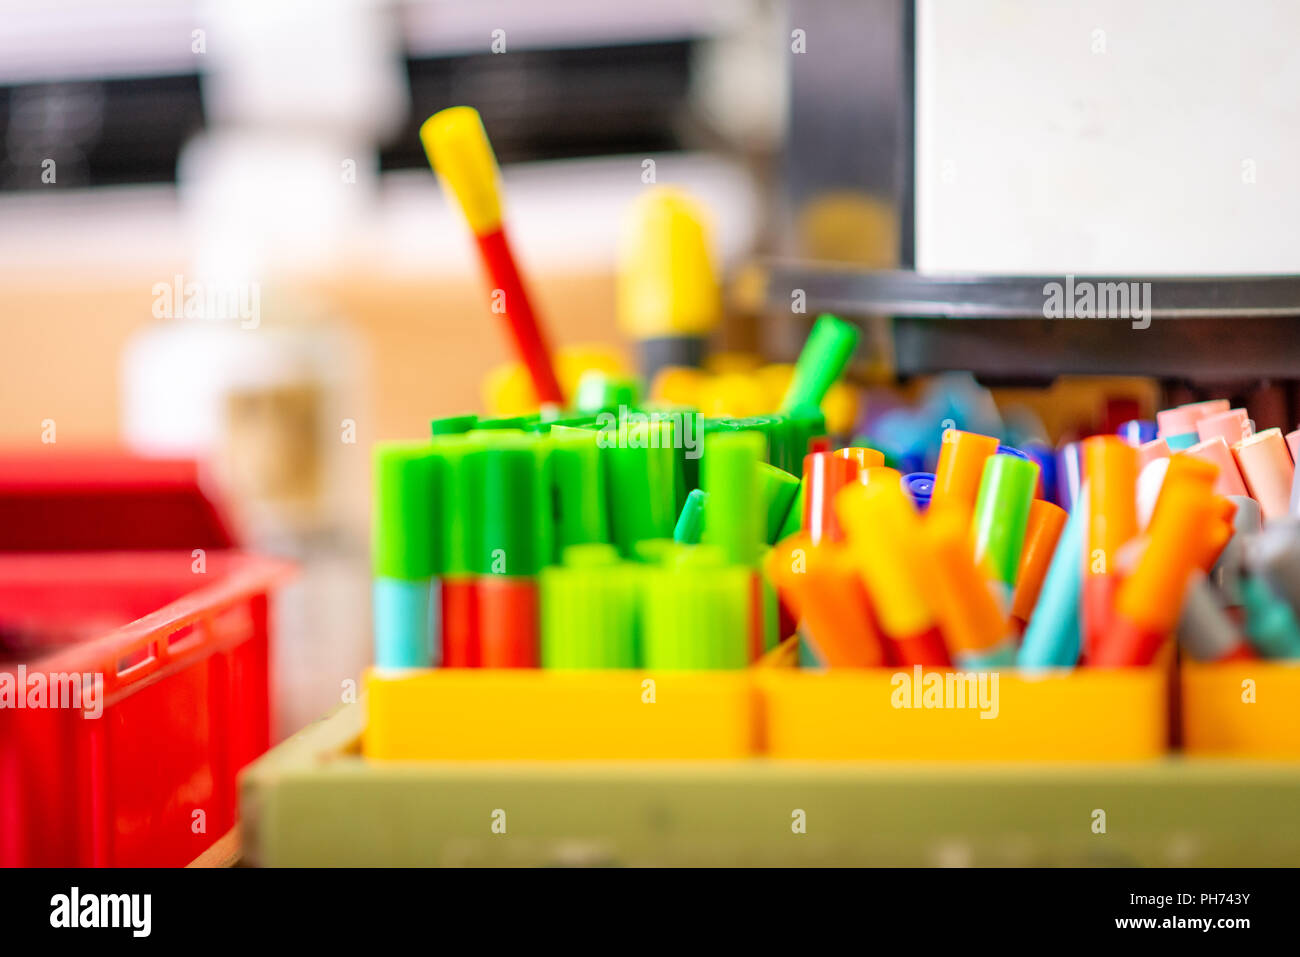 Close up image of pots of coloured pens and crayons in a school art classroom Stock Photo